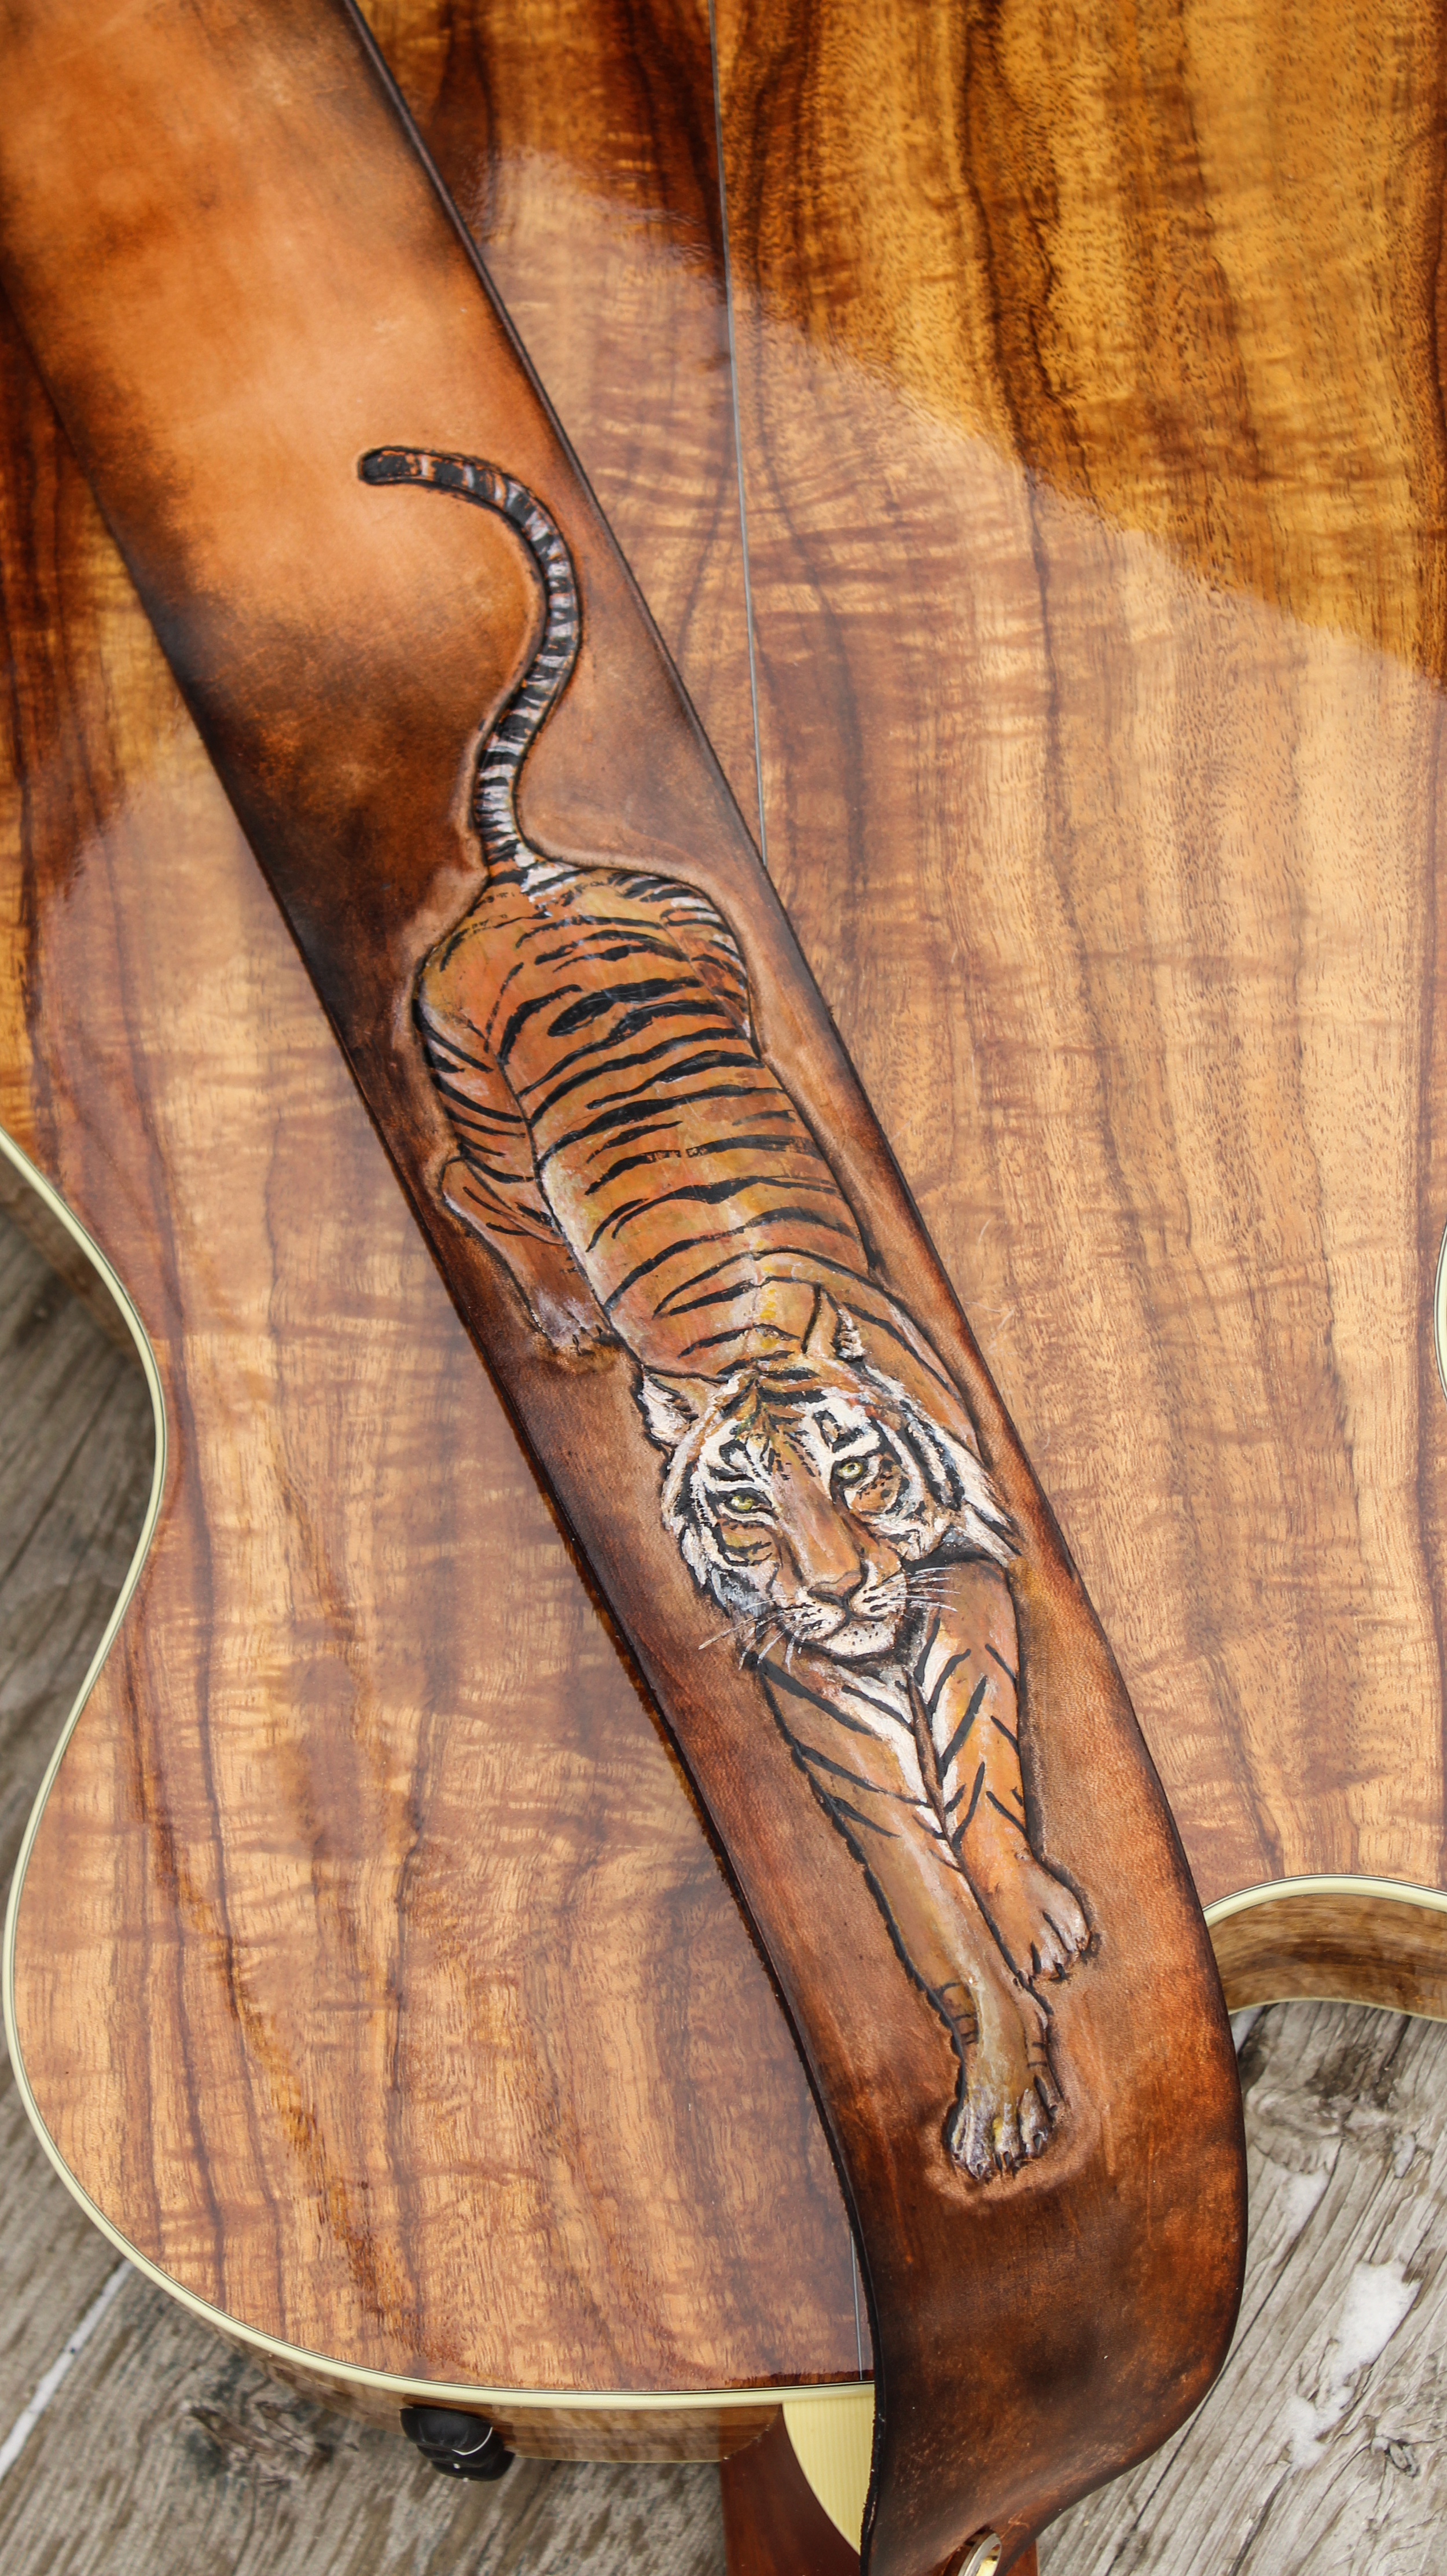 Tooled Tiger on leather guitar strap